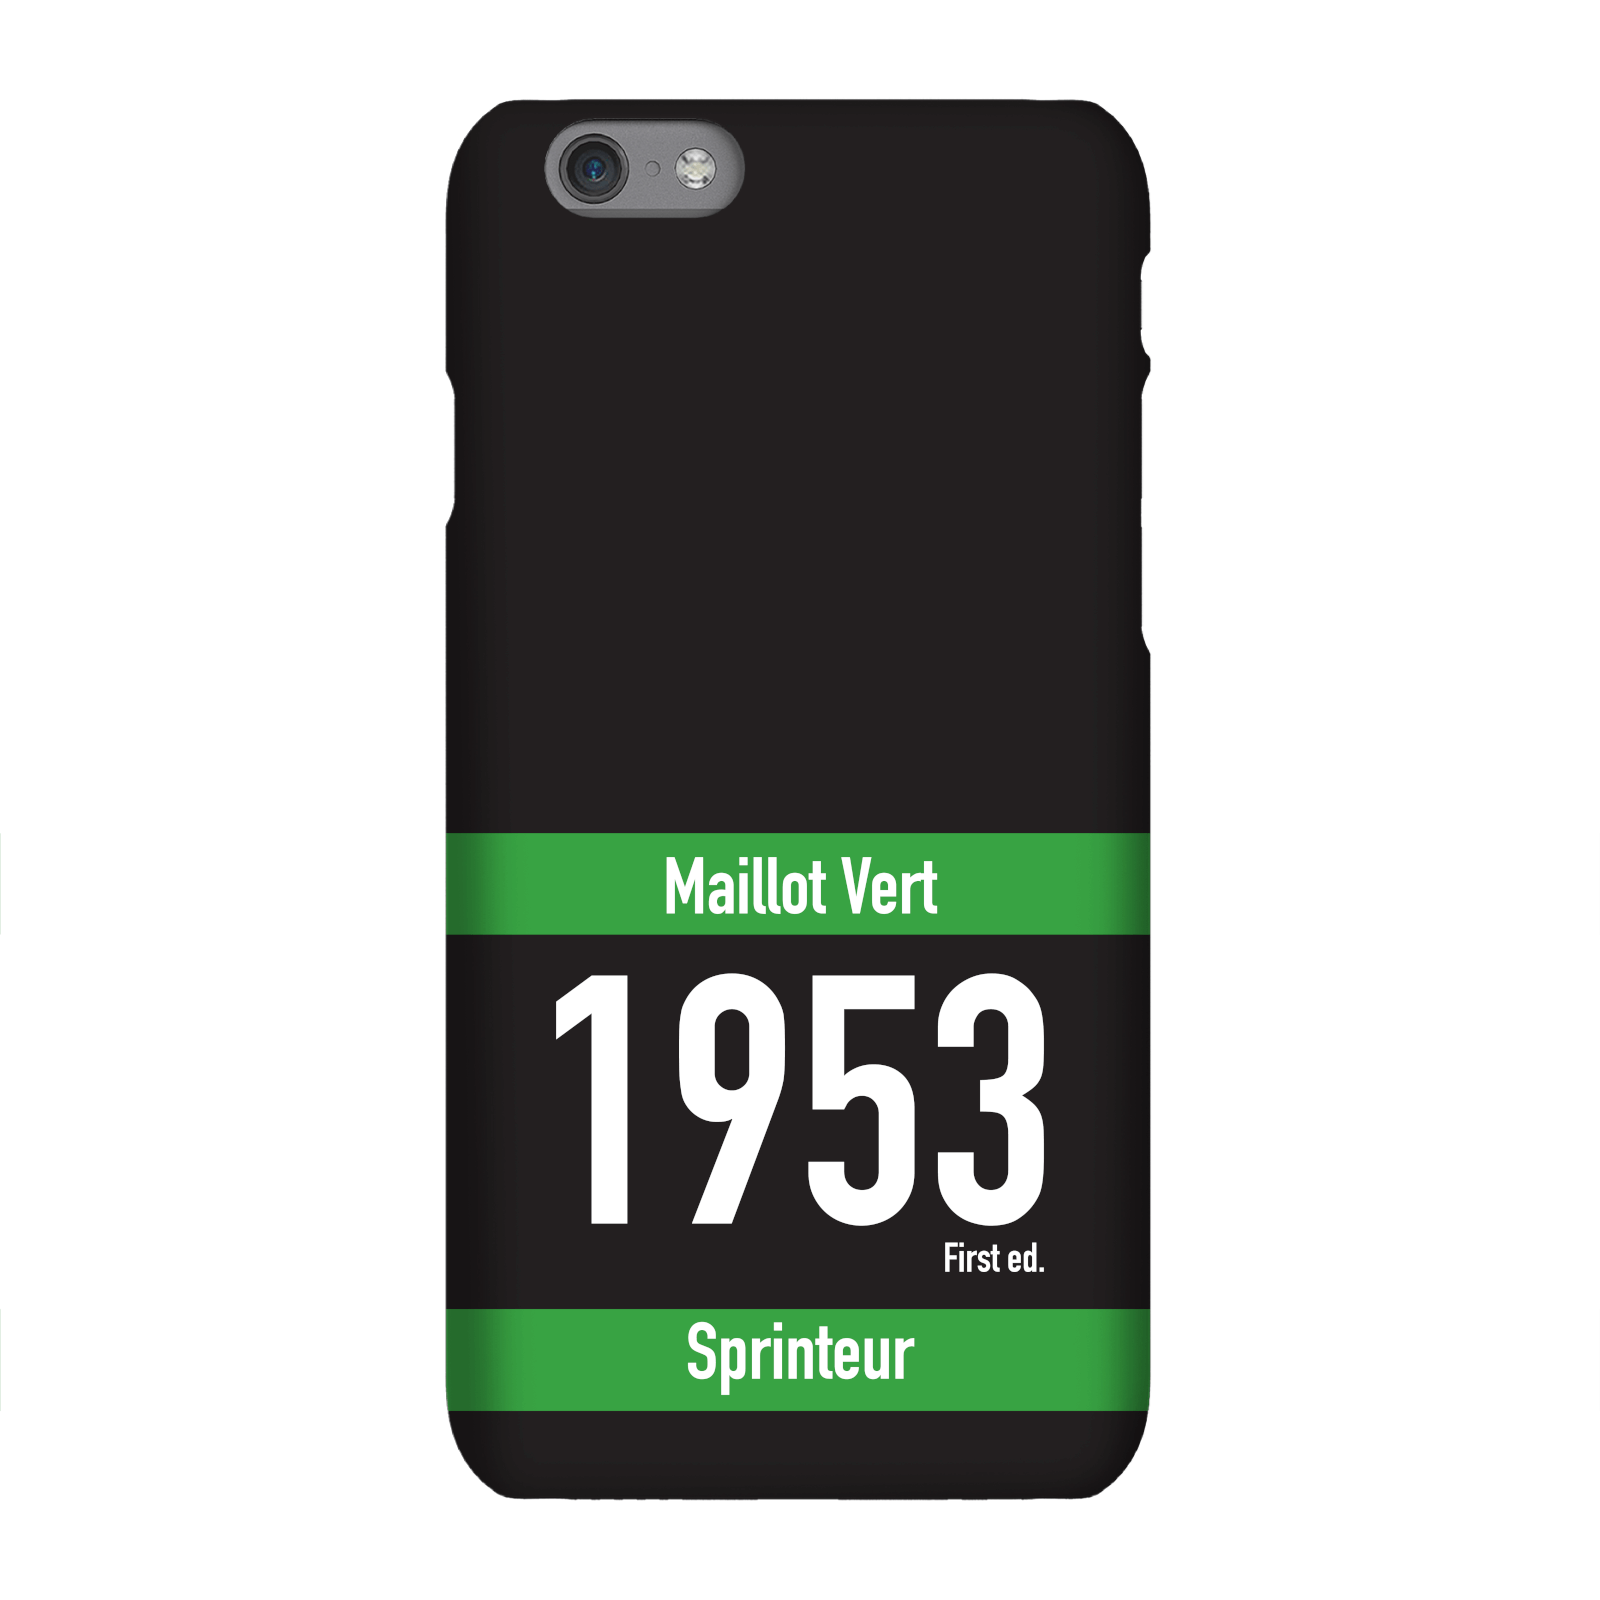 Maillot Vert Phone Case for iPhone and Android - iPhone 8 Plus - Snap Case - Gloss